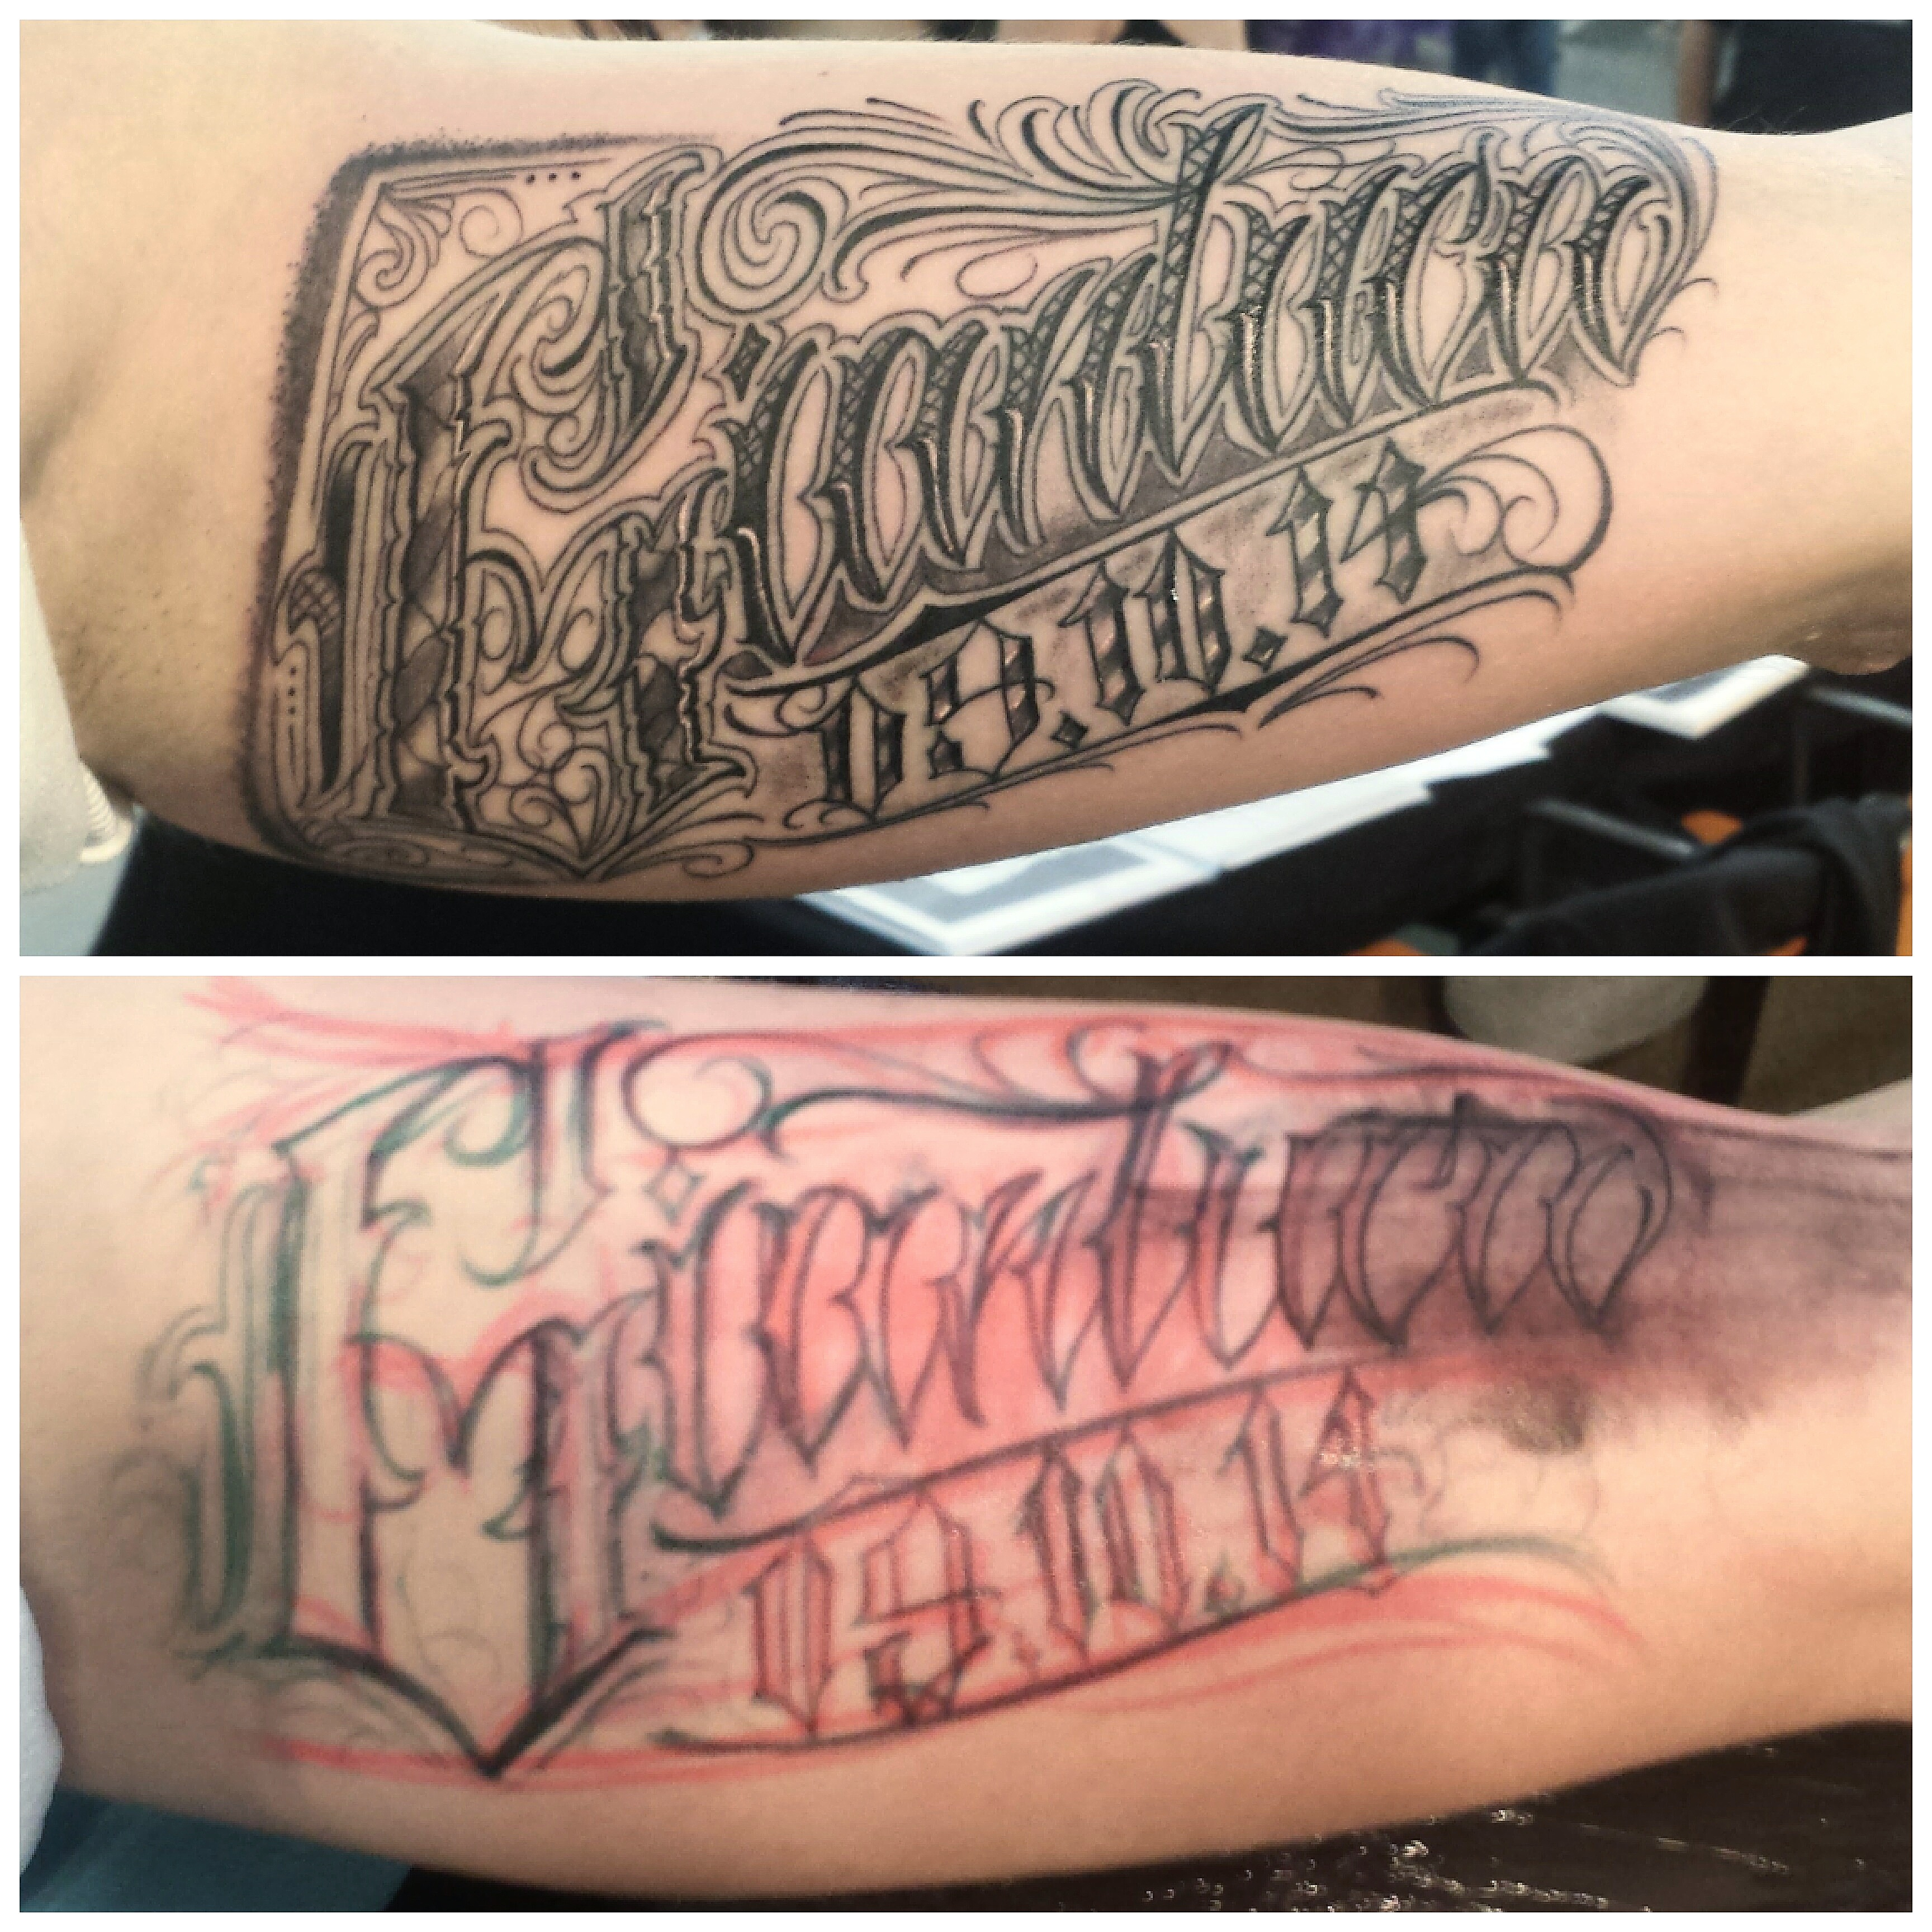 Philippe d las certified artist for Letter tattoos on hand